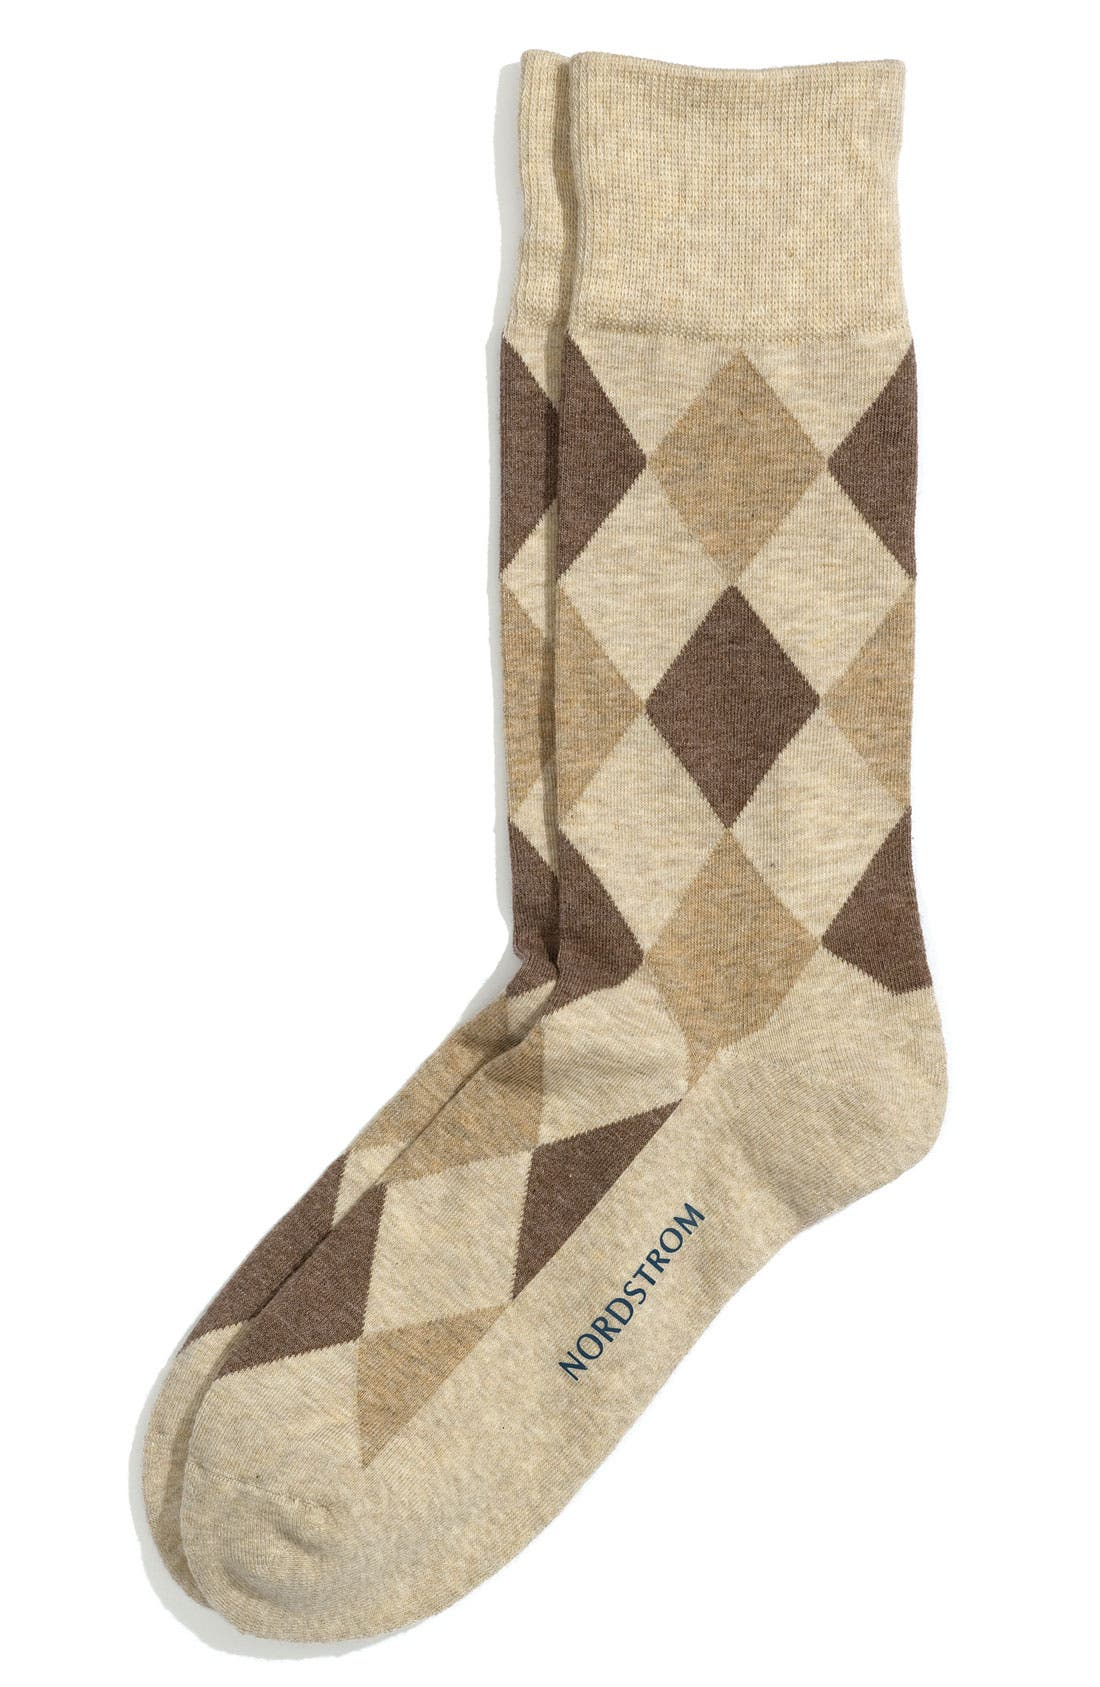 Alternate Image 1 Selected - Nordstrom 'Cushion Foot' Socks